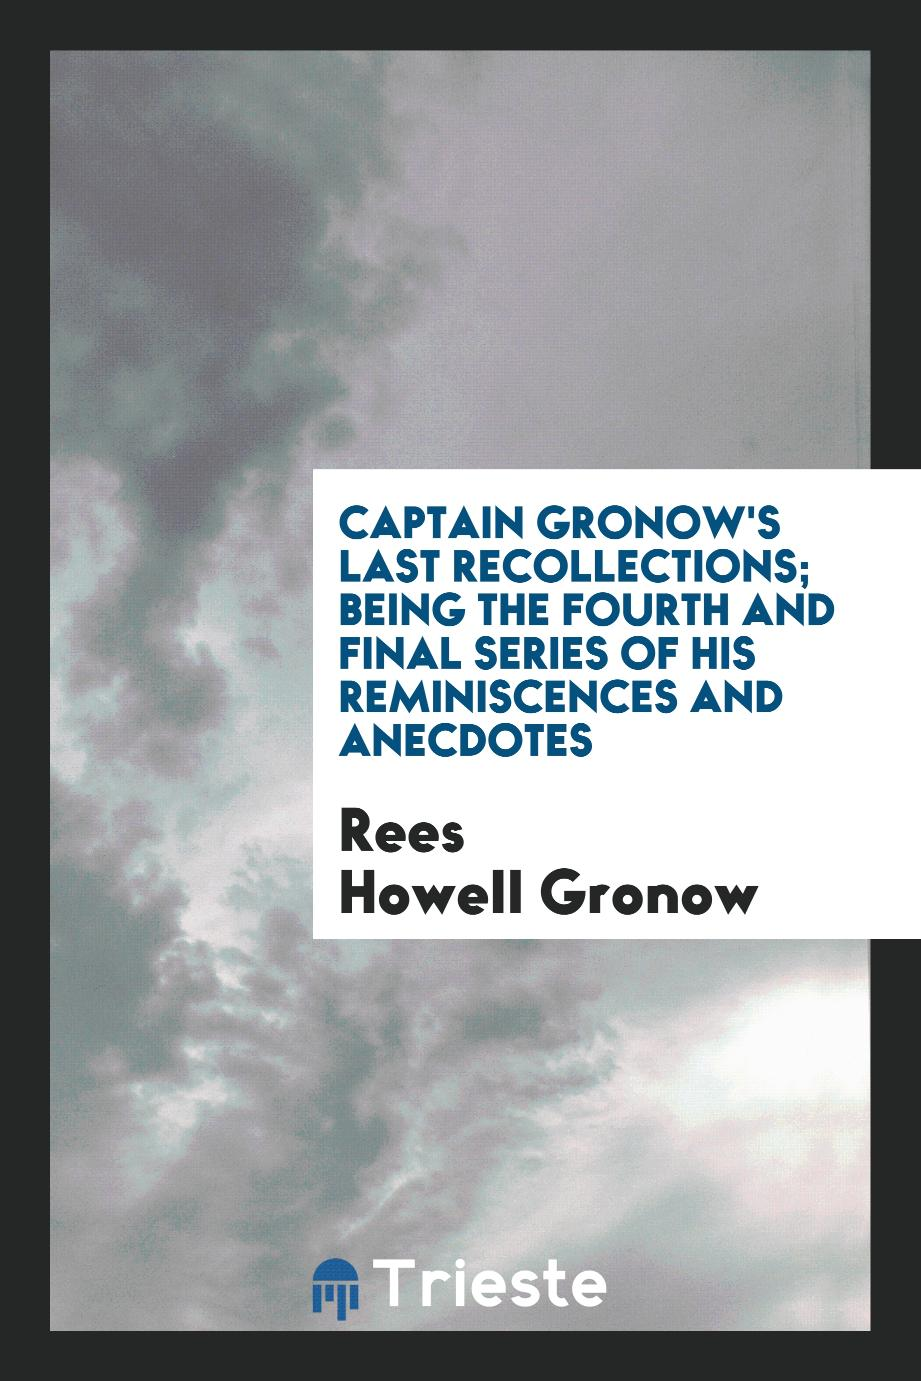 Captain Gronow's Last Recollections; Being the Fourth and Final Series of His Reminiscences and Anecdotes